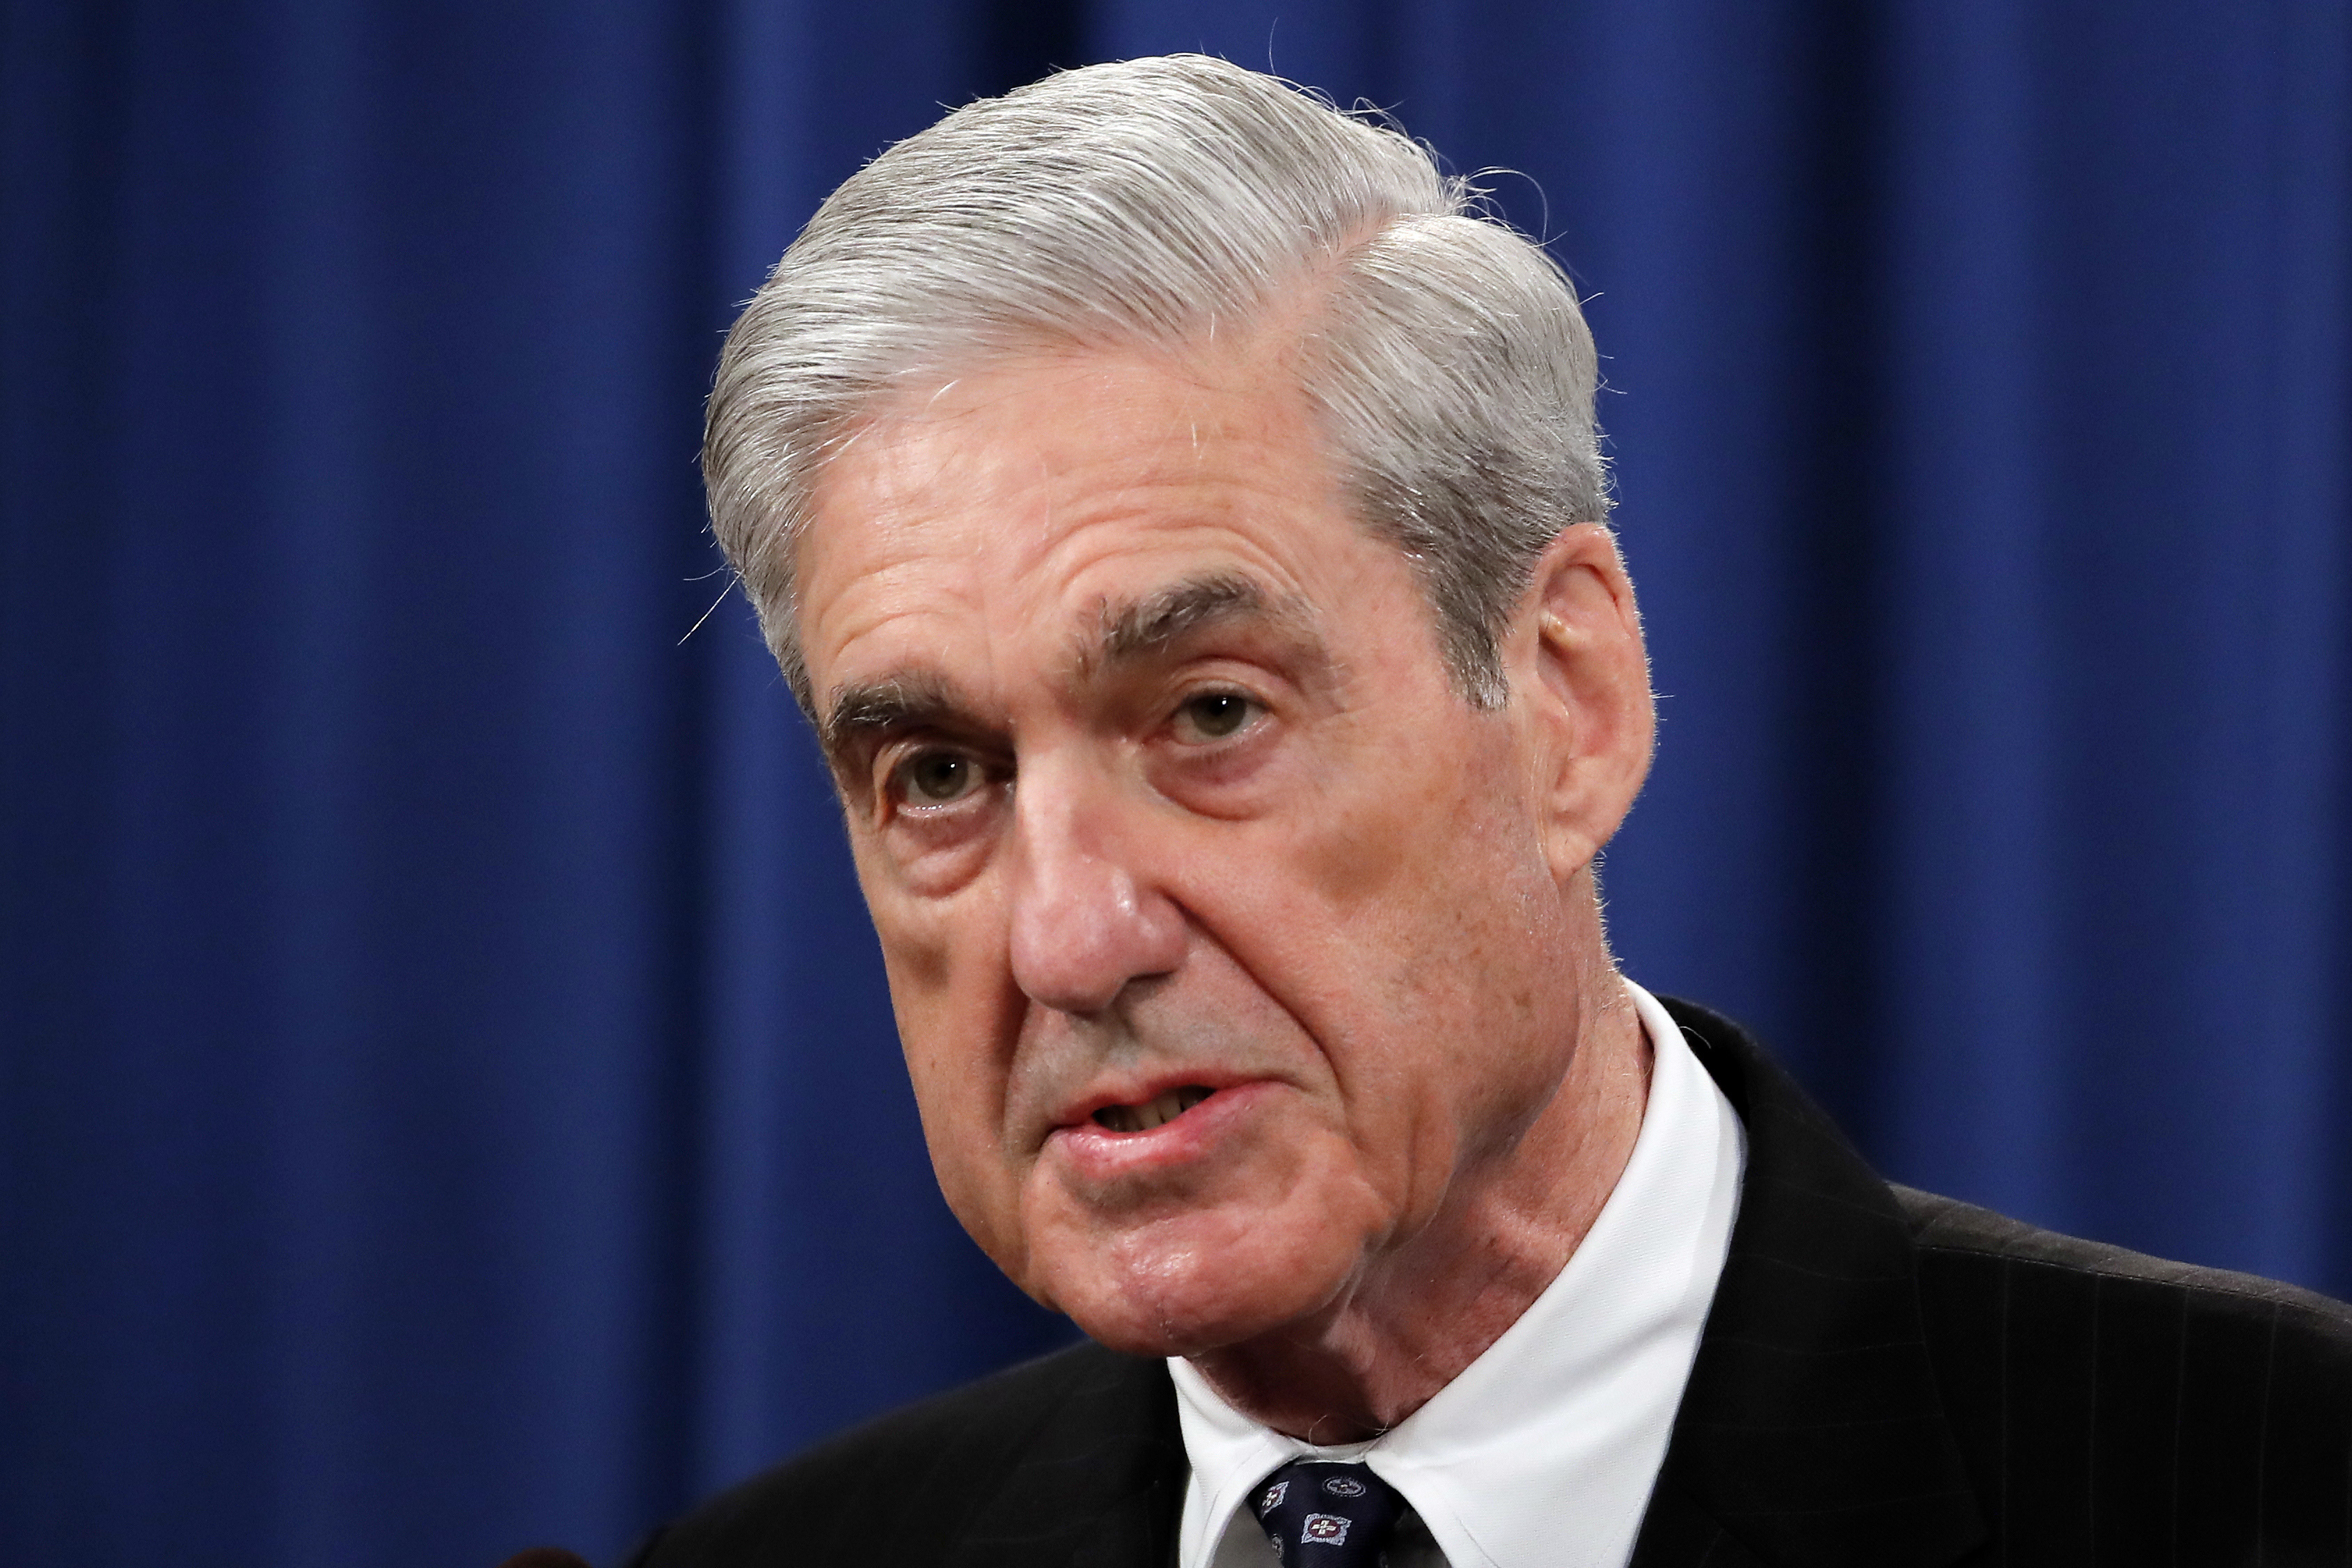 Robert Mueller, William Barr rebuked by judge in case of Russia company Concord